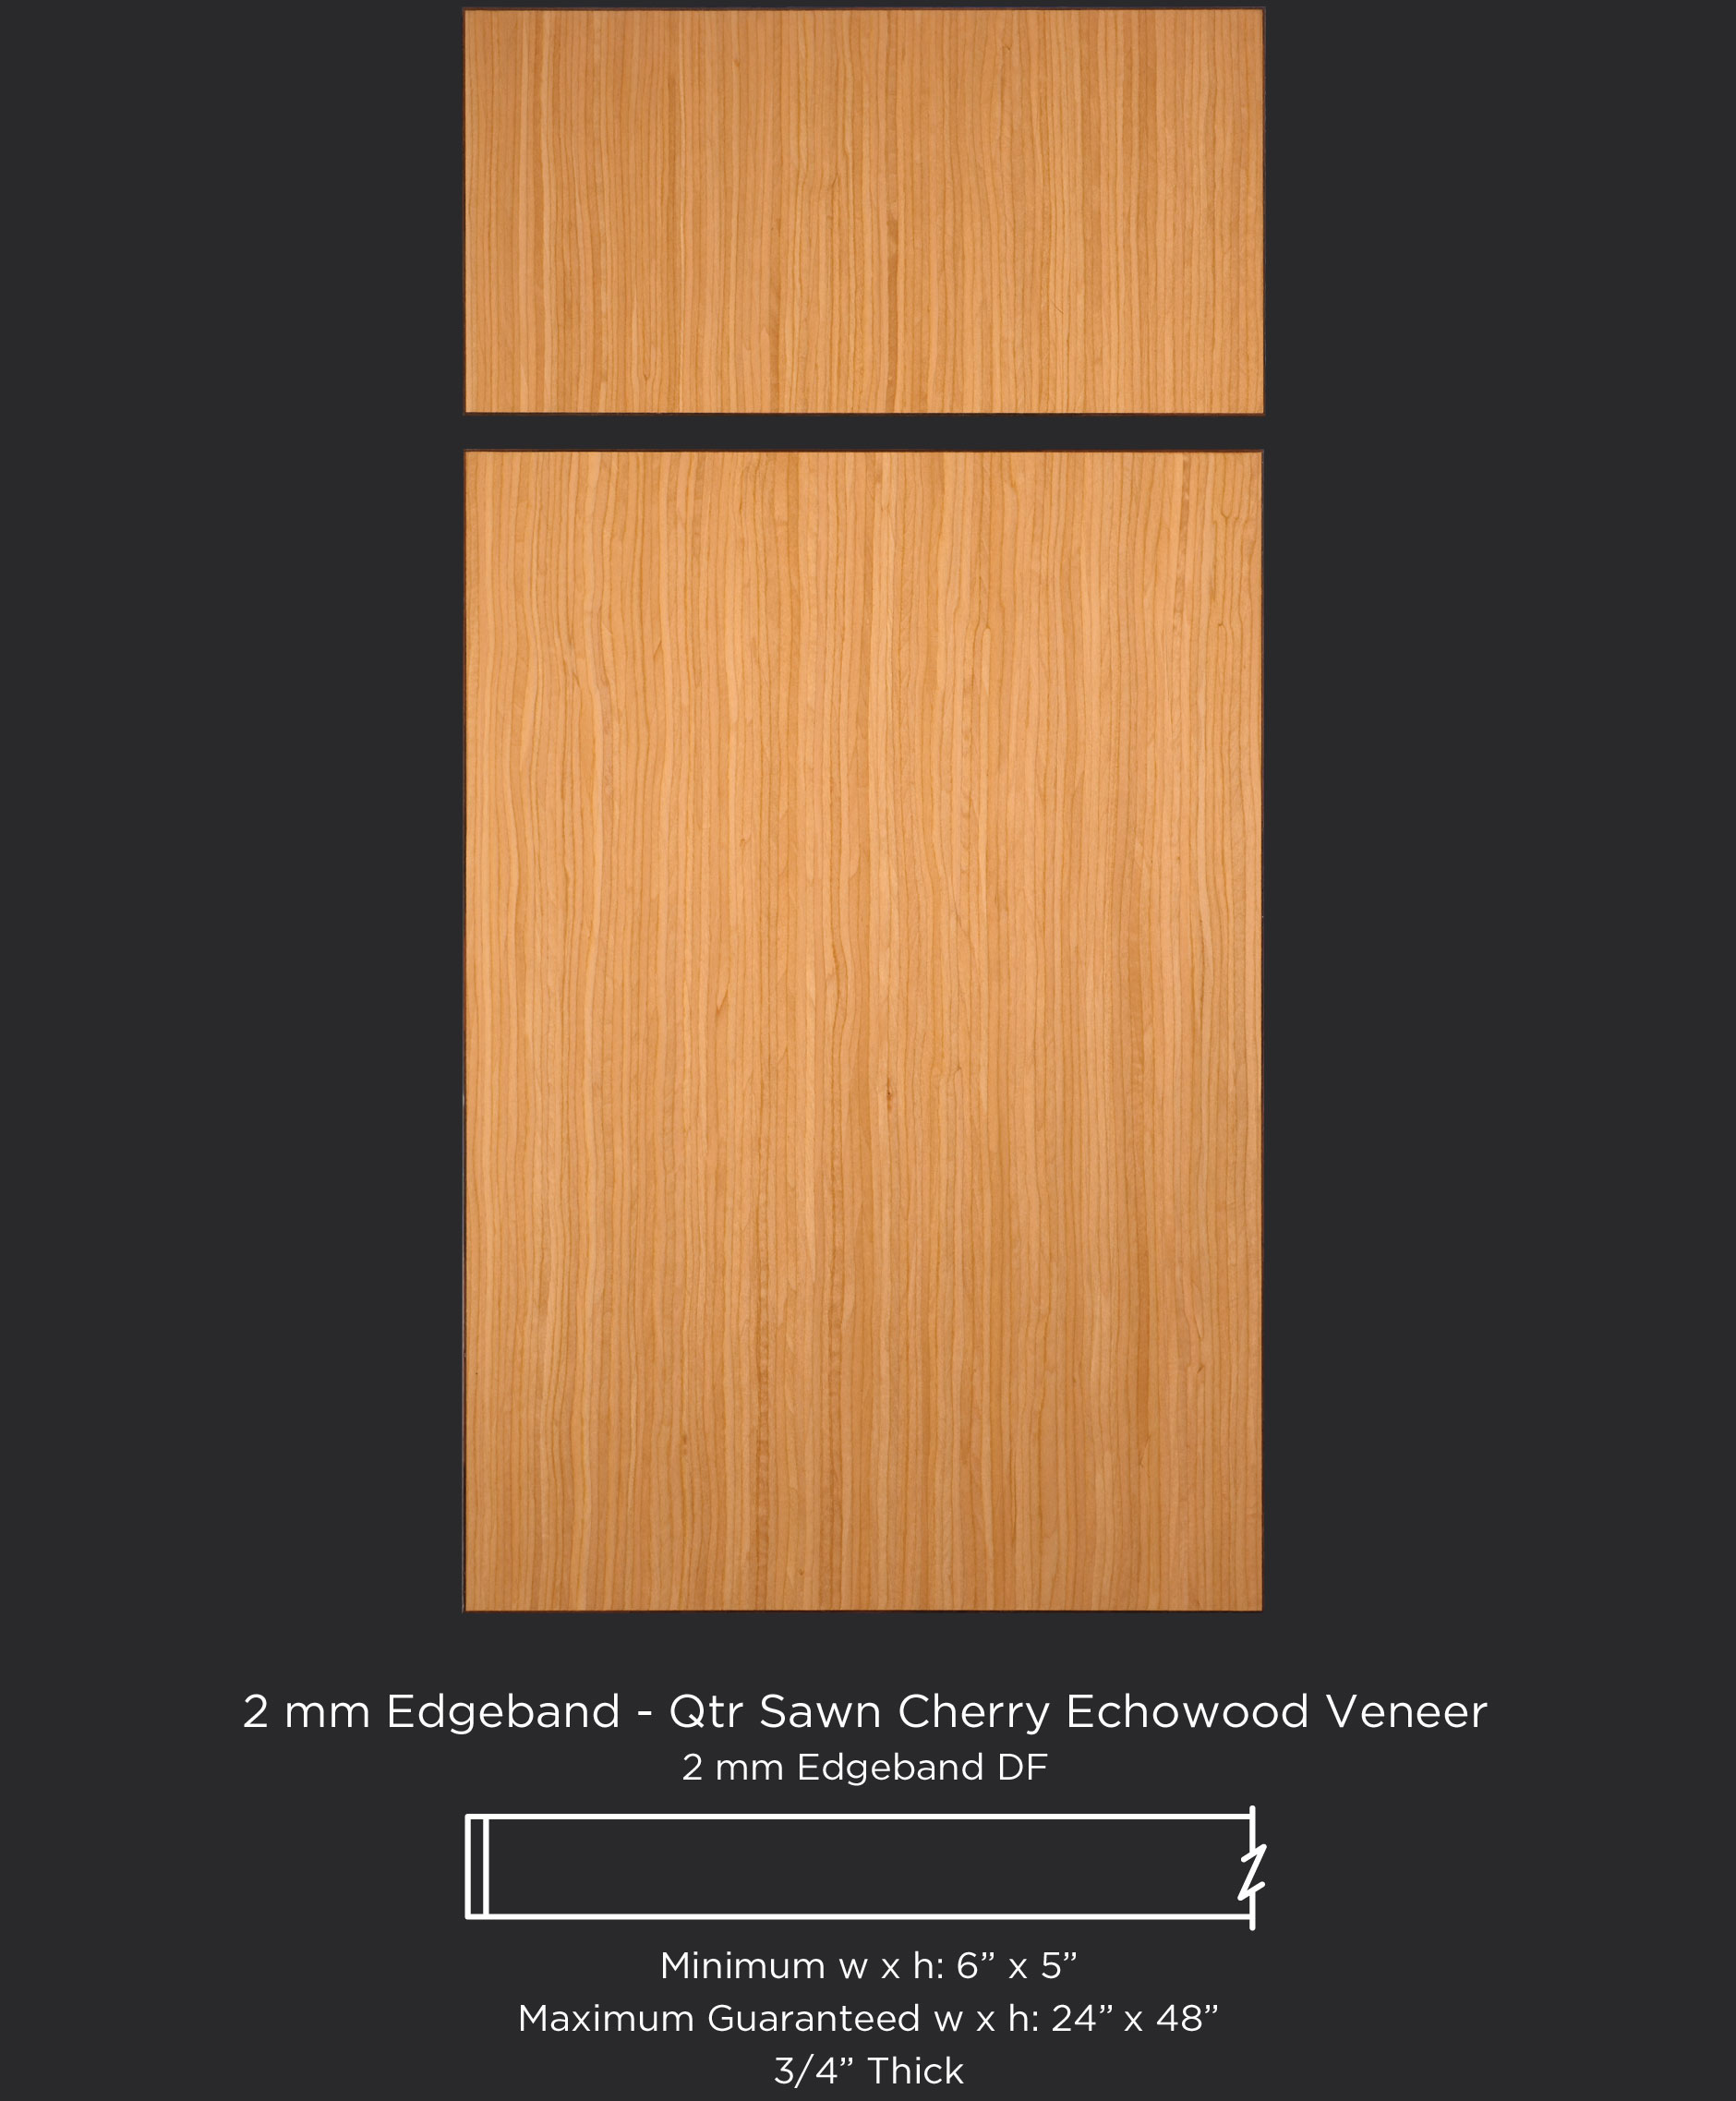 2 Mm Edgeband Quarter Sawn Maple Echowood Veneer